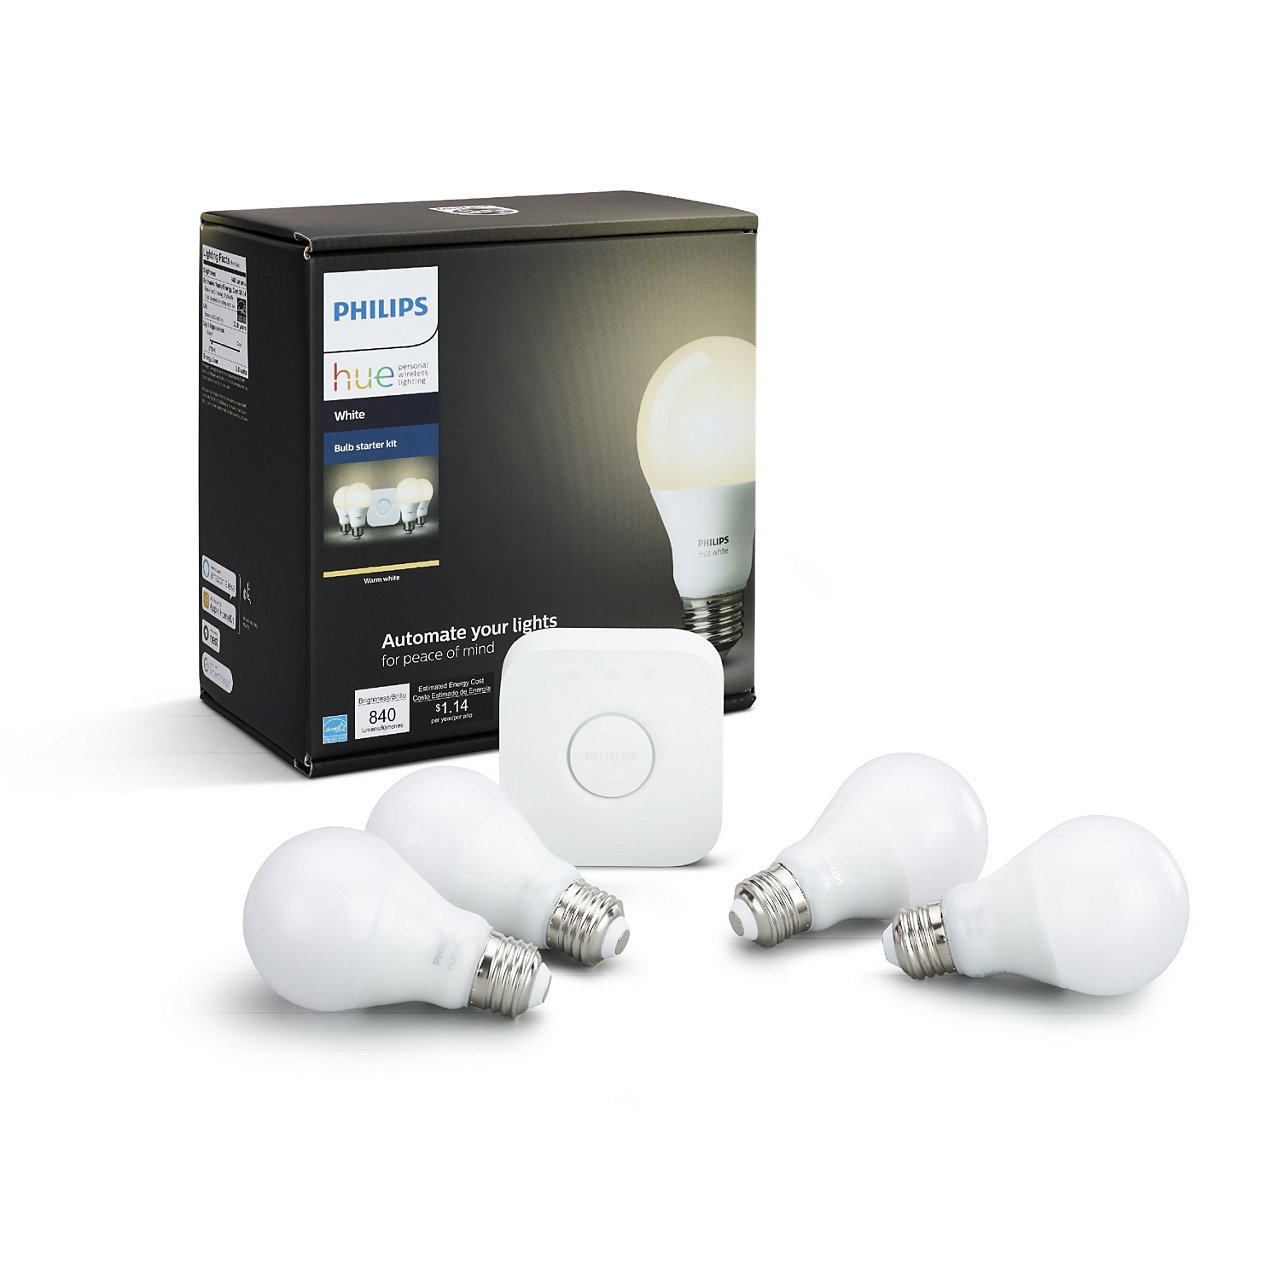 Hue White A19 LED Starter Kit